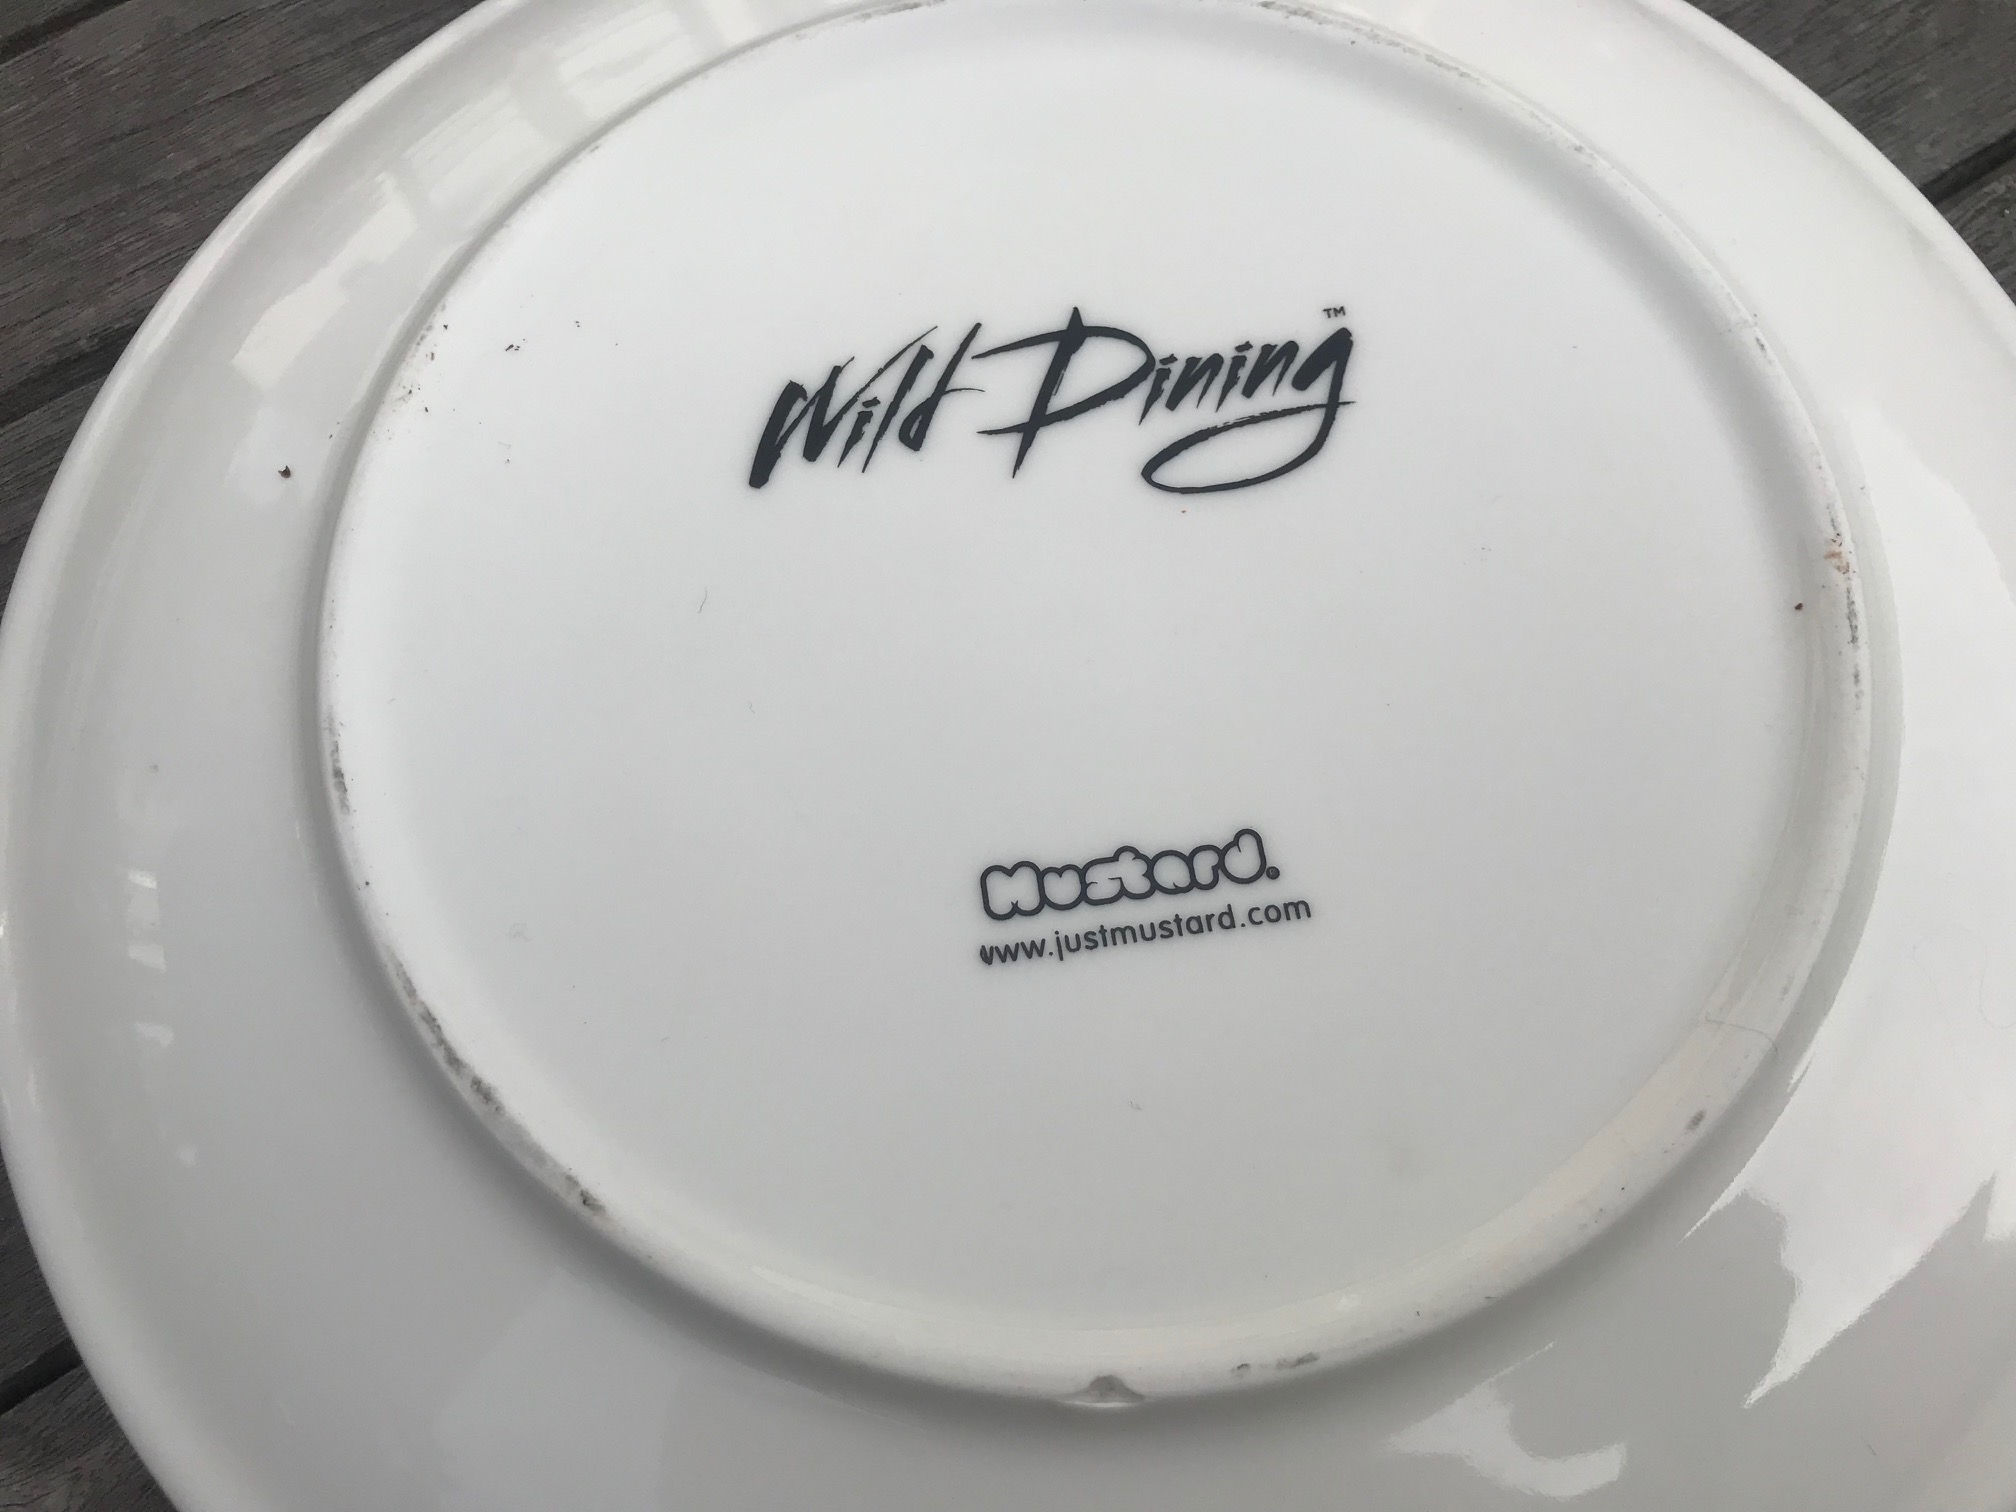 """New Wild Dining """"JustMustard"""" Brand Gorilla Plate: 22,600 +/- 600 ppm Lead when tested with an XRF instrument."""